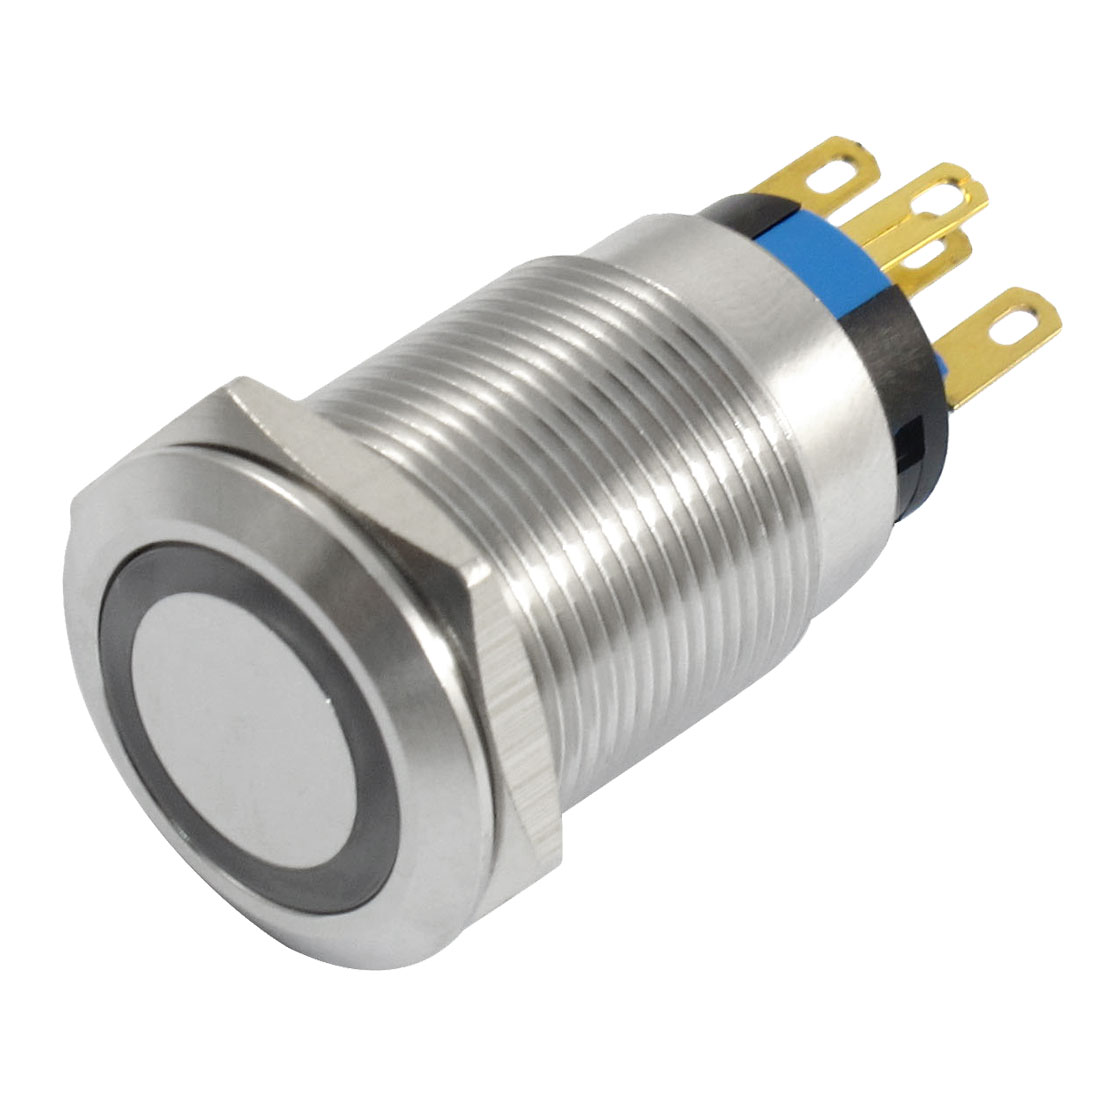 220V White Lamp Stainless Steel Self Locking Push Button Switch